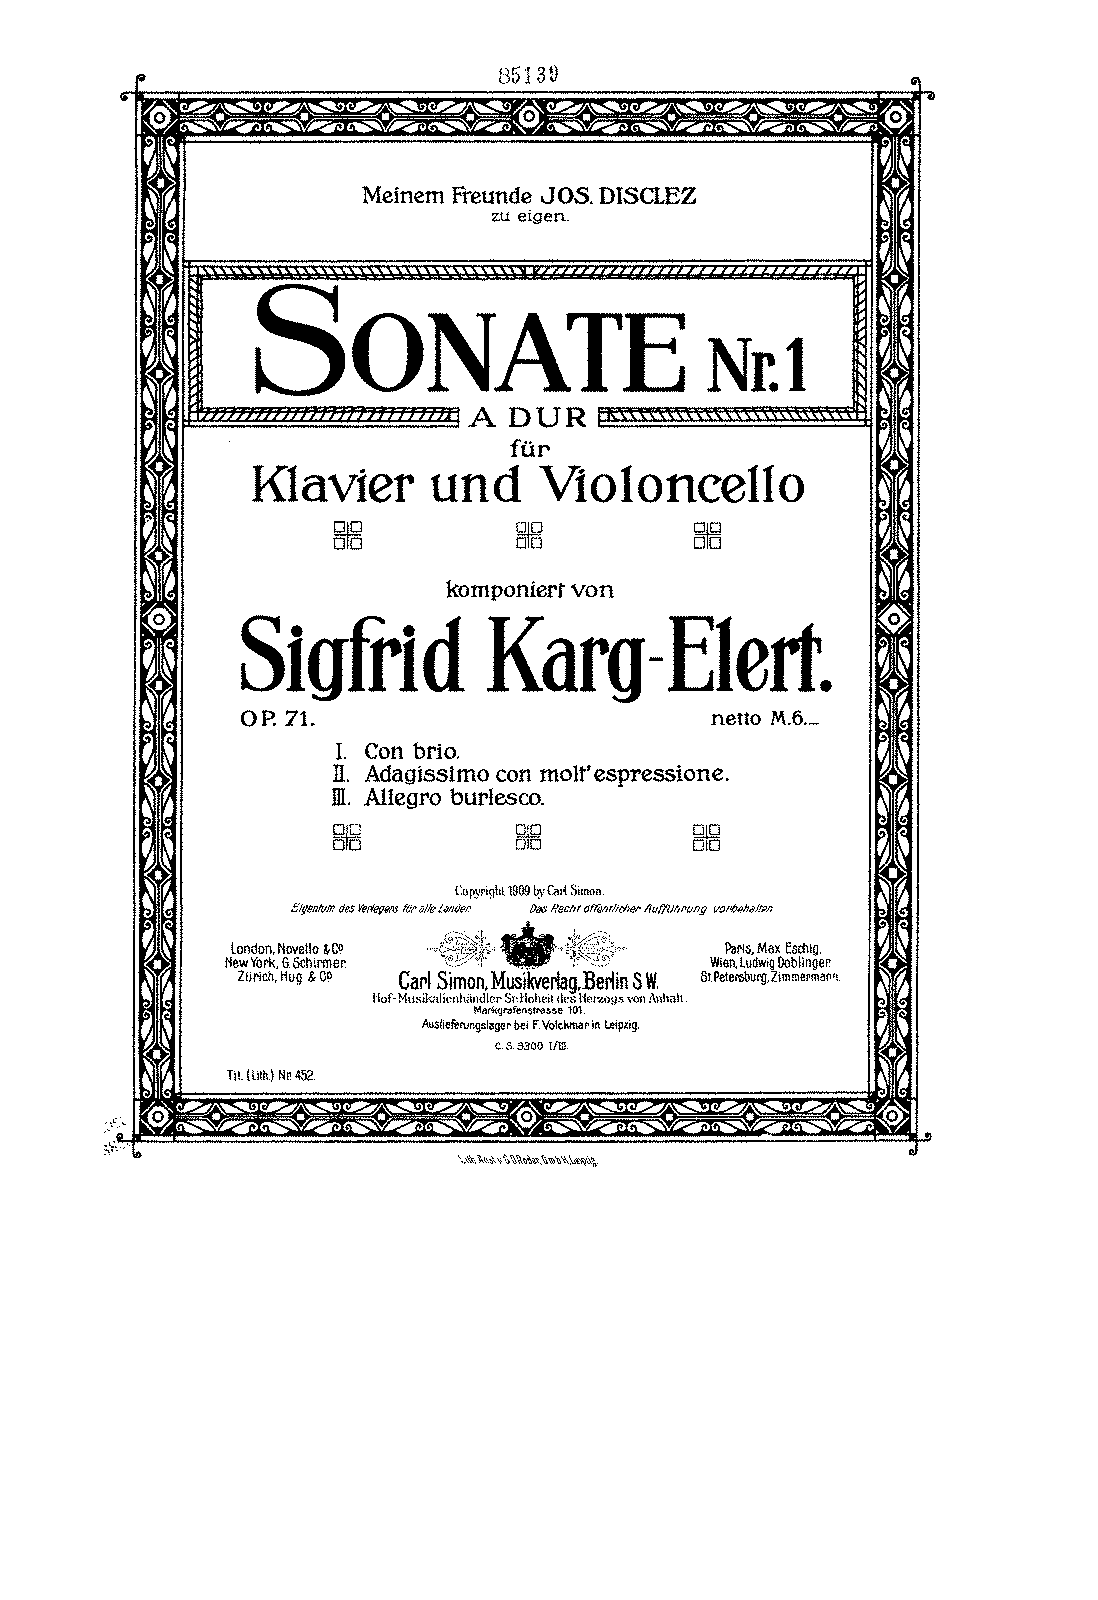 PMLP137278-Karg-Elert - Sonata No1 in A Major for Cello and Piano Op71 score.pdf